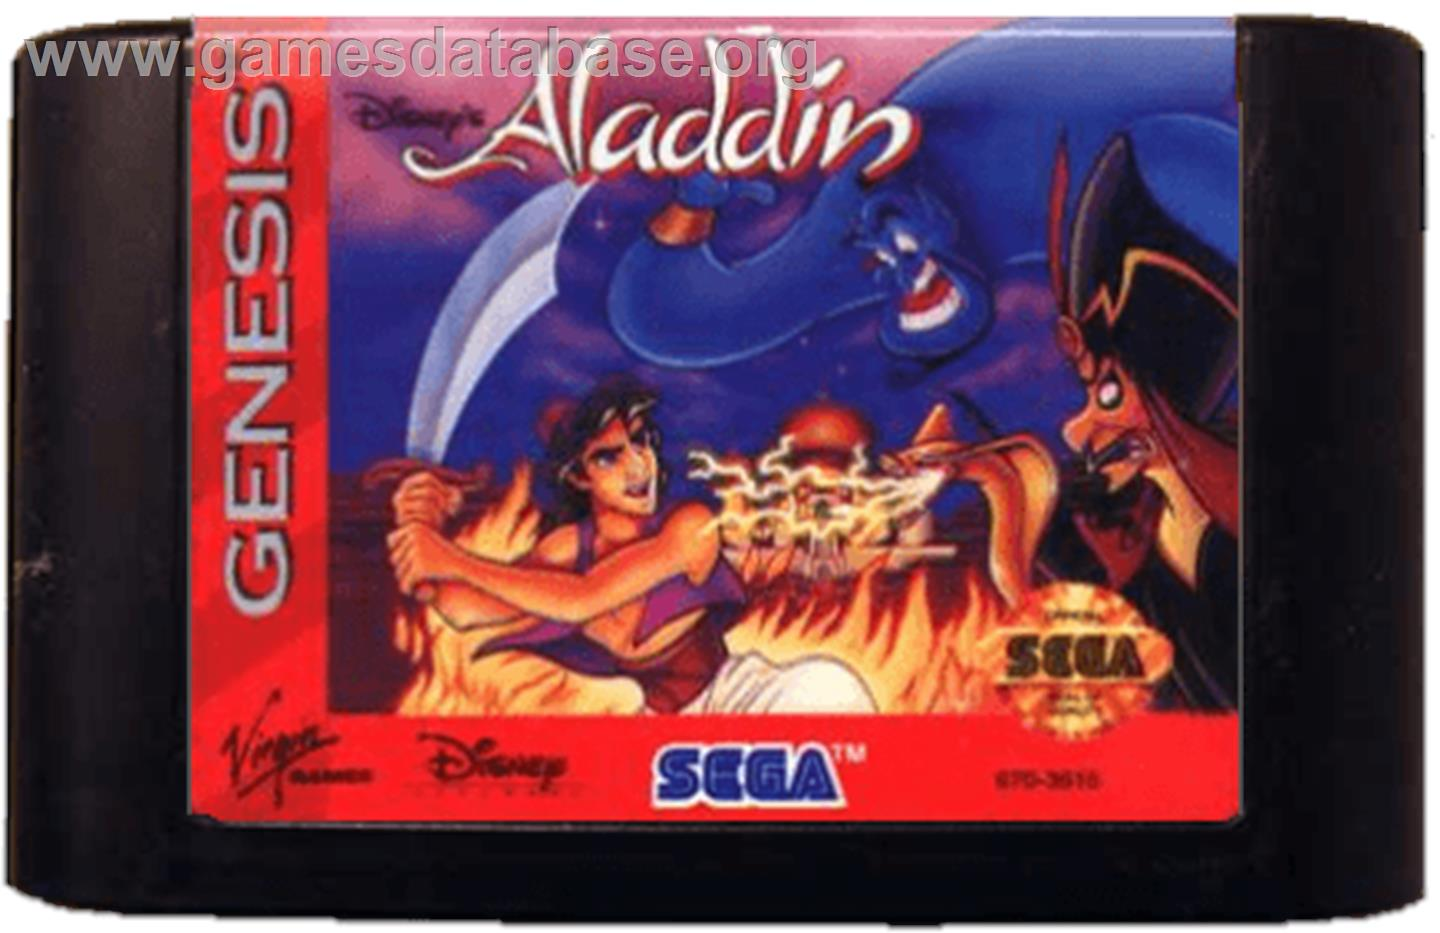 Cartridge artwork for Aladdin on the Sega Genesis.